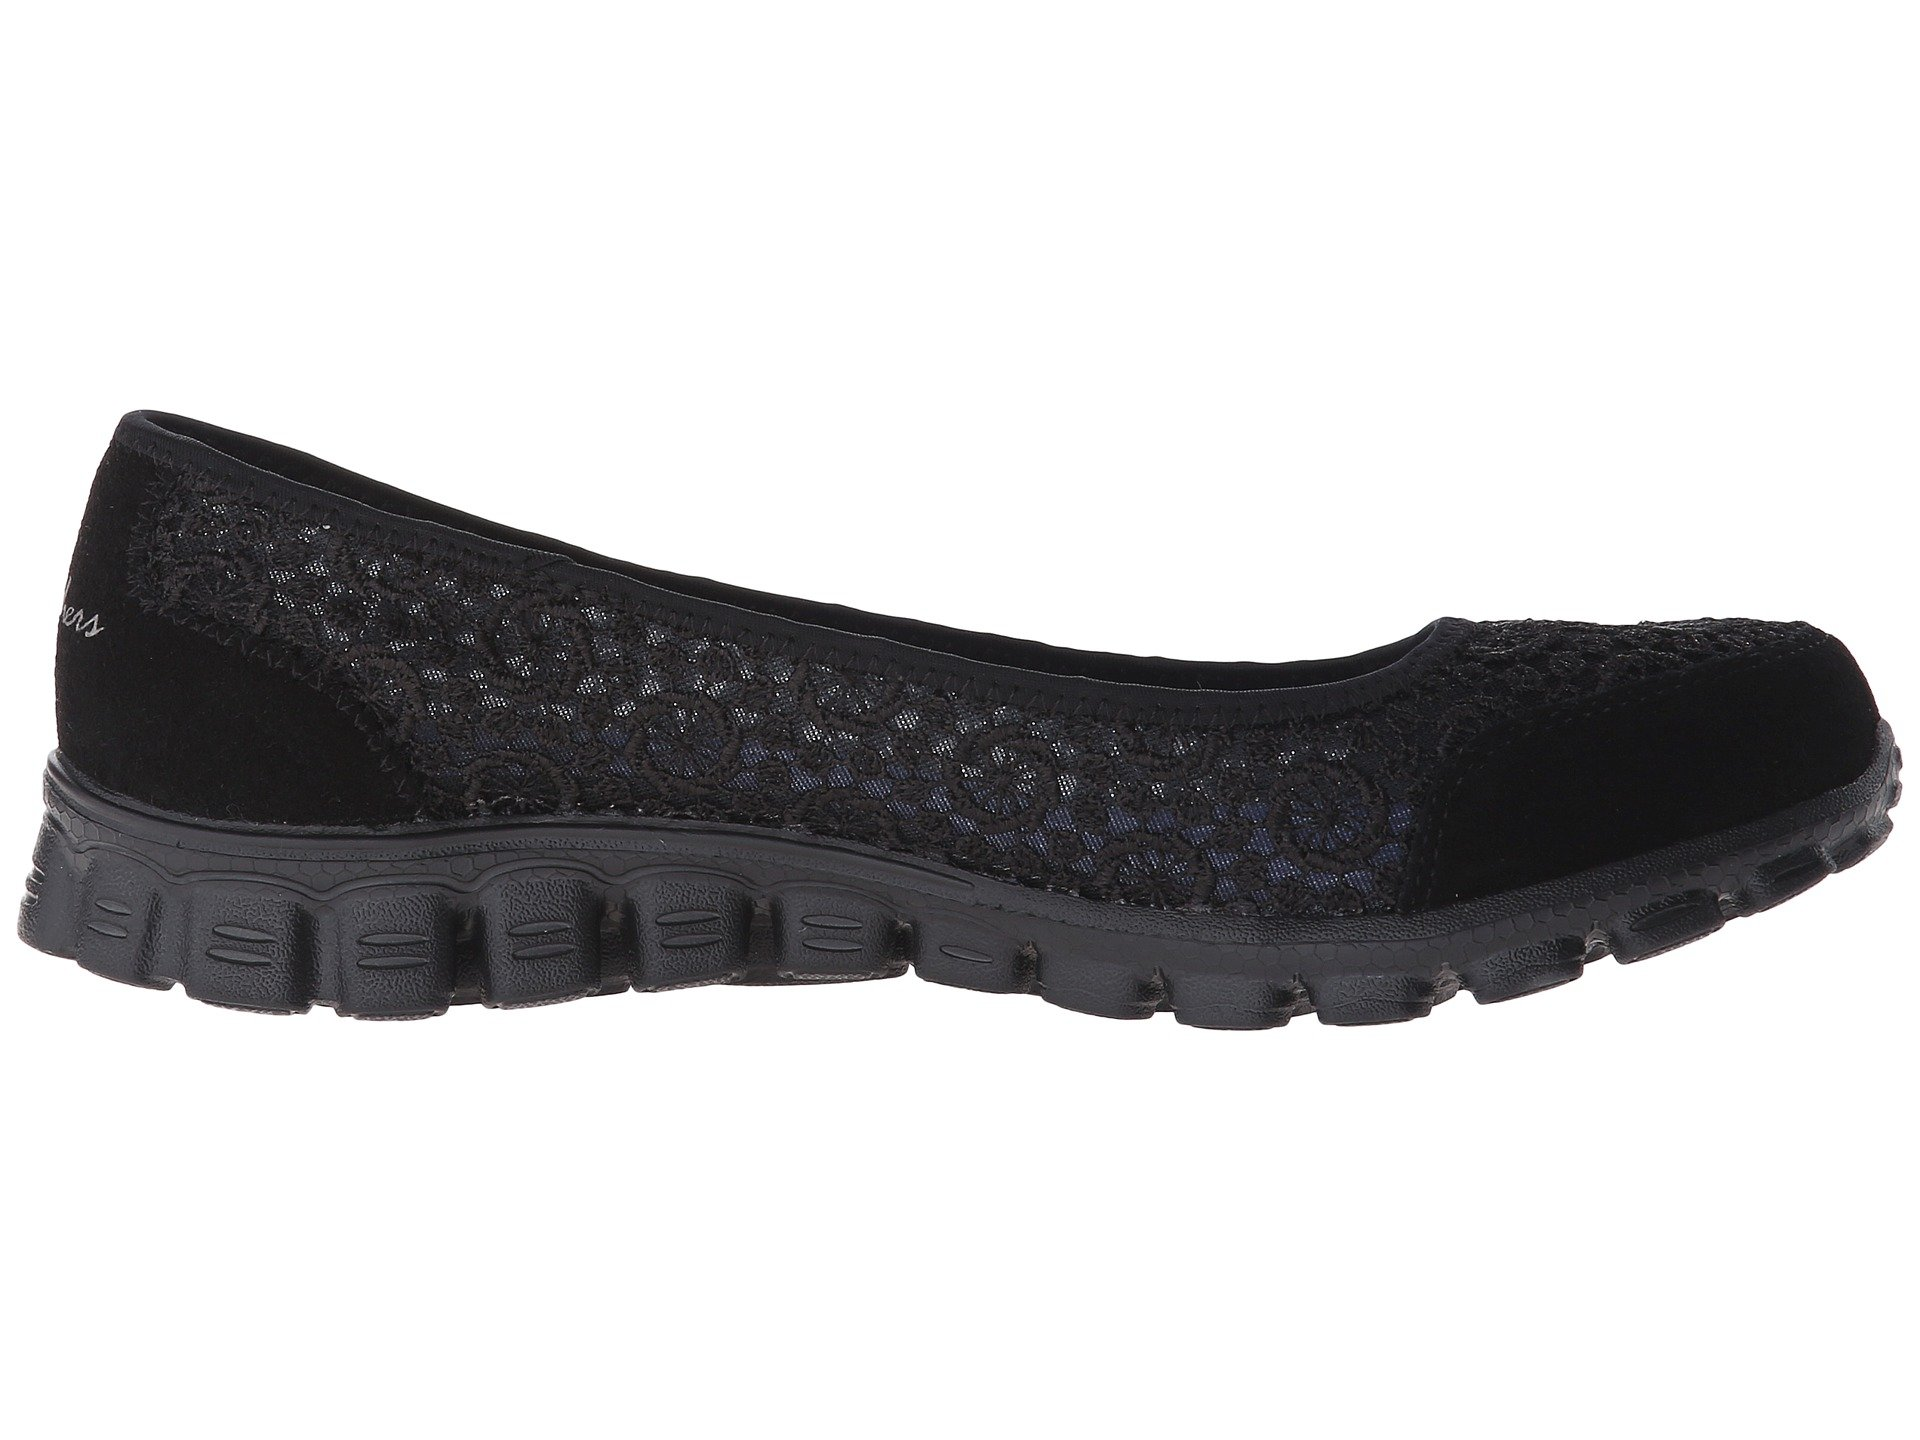 c8f1aaad skechers easy flex Sale,up to 48% DiscountsDiscounts